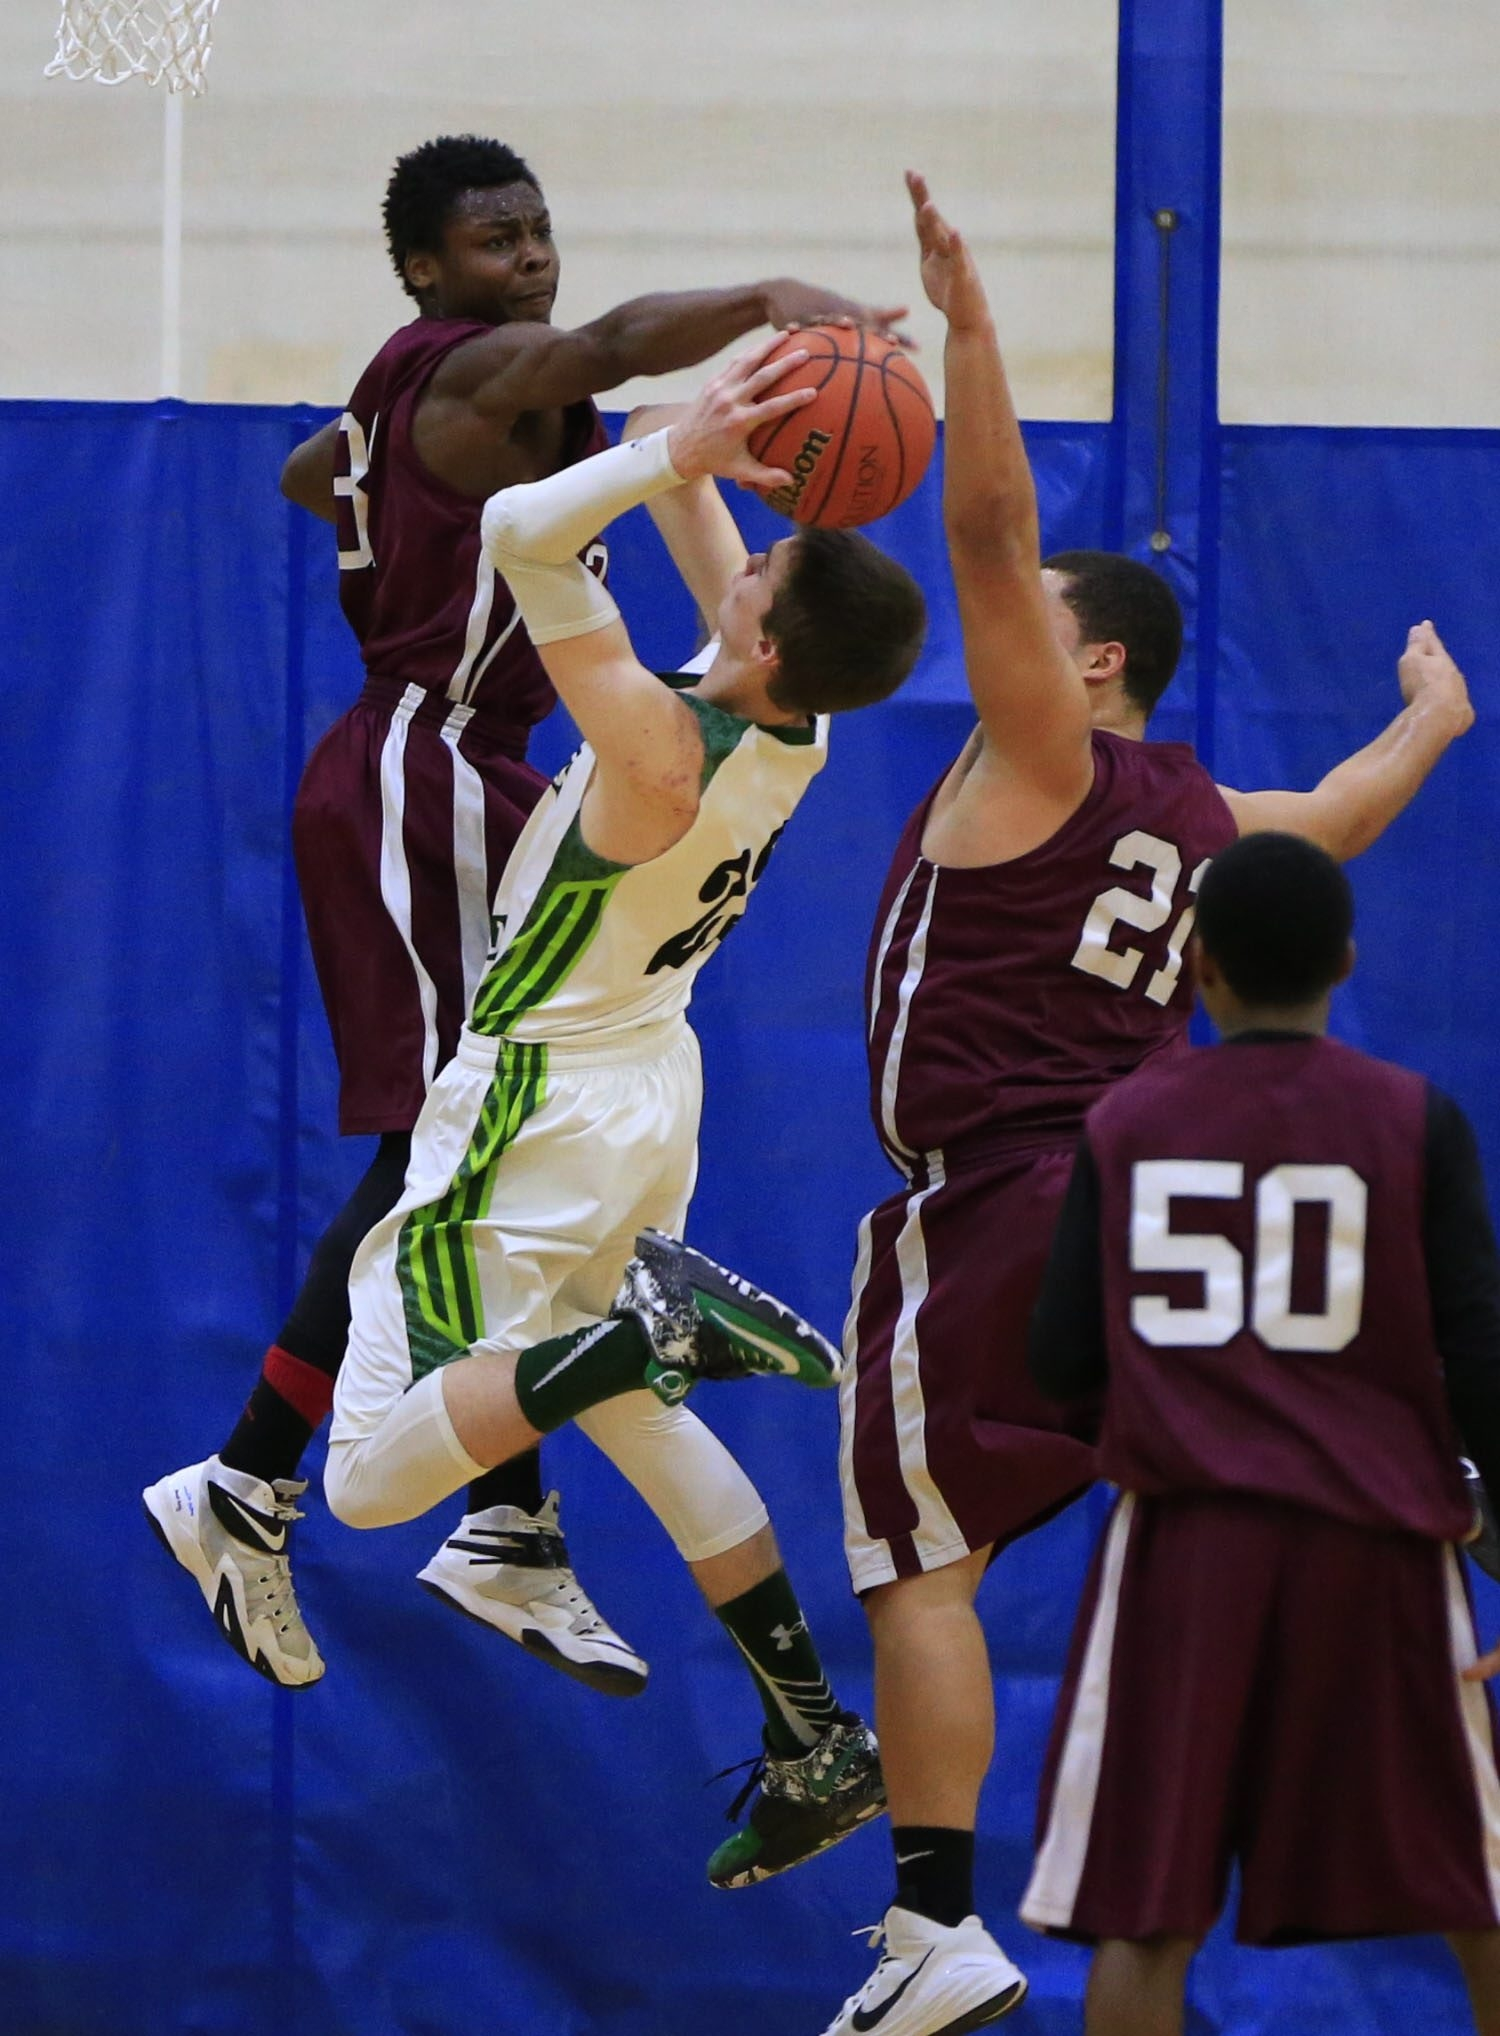 Lake Shore's Brandon Buchanan (22) has his shot blocked by Maryvale's Ted York-Brown (31) during Friday's game.